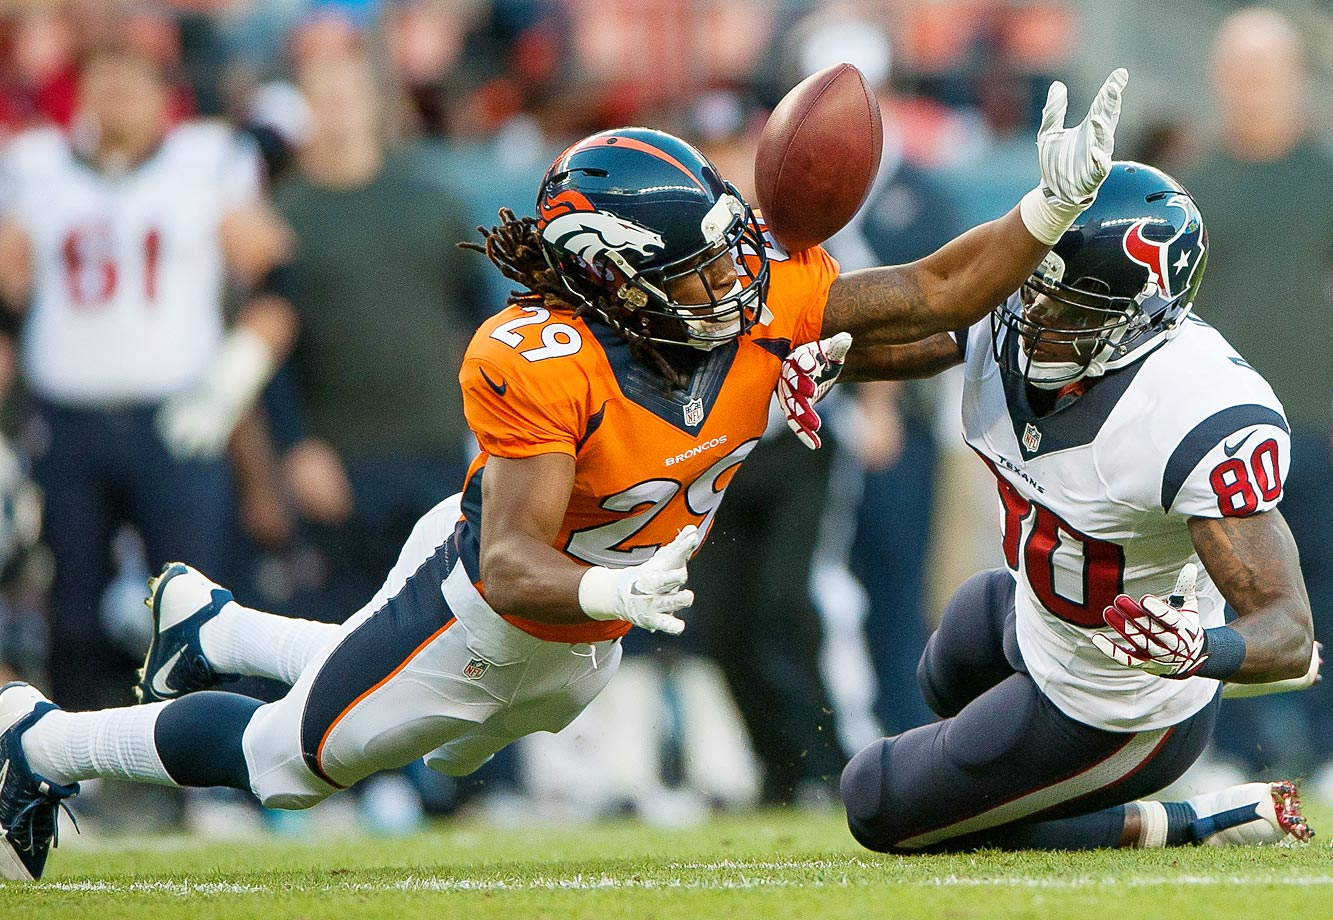 Cornerback Bradley Roby of the Broncos breaks up a pass intended for Texans wide receiver Andre Johnson on August 23.  Houston won the game, 18-17.